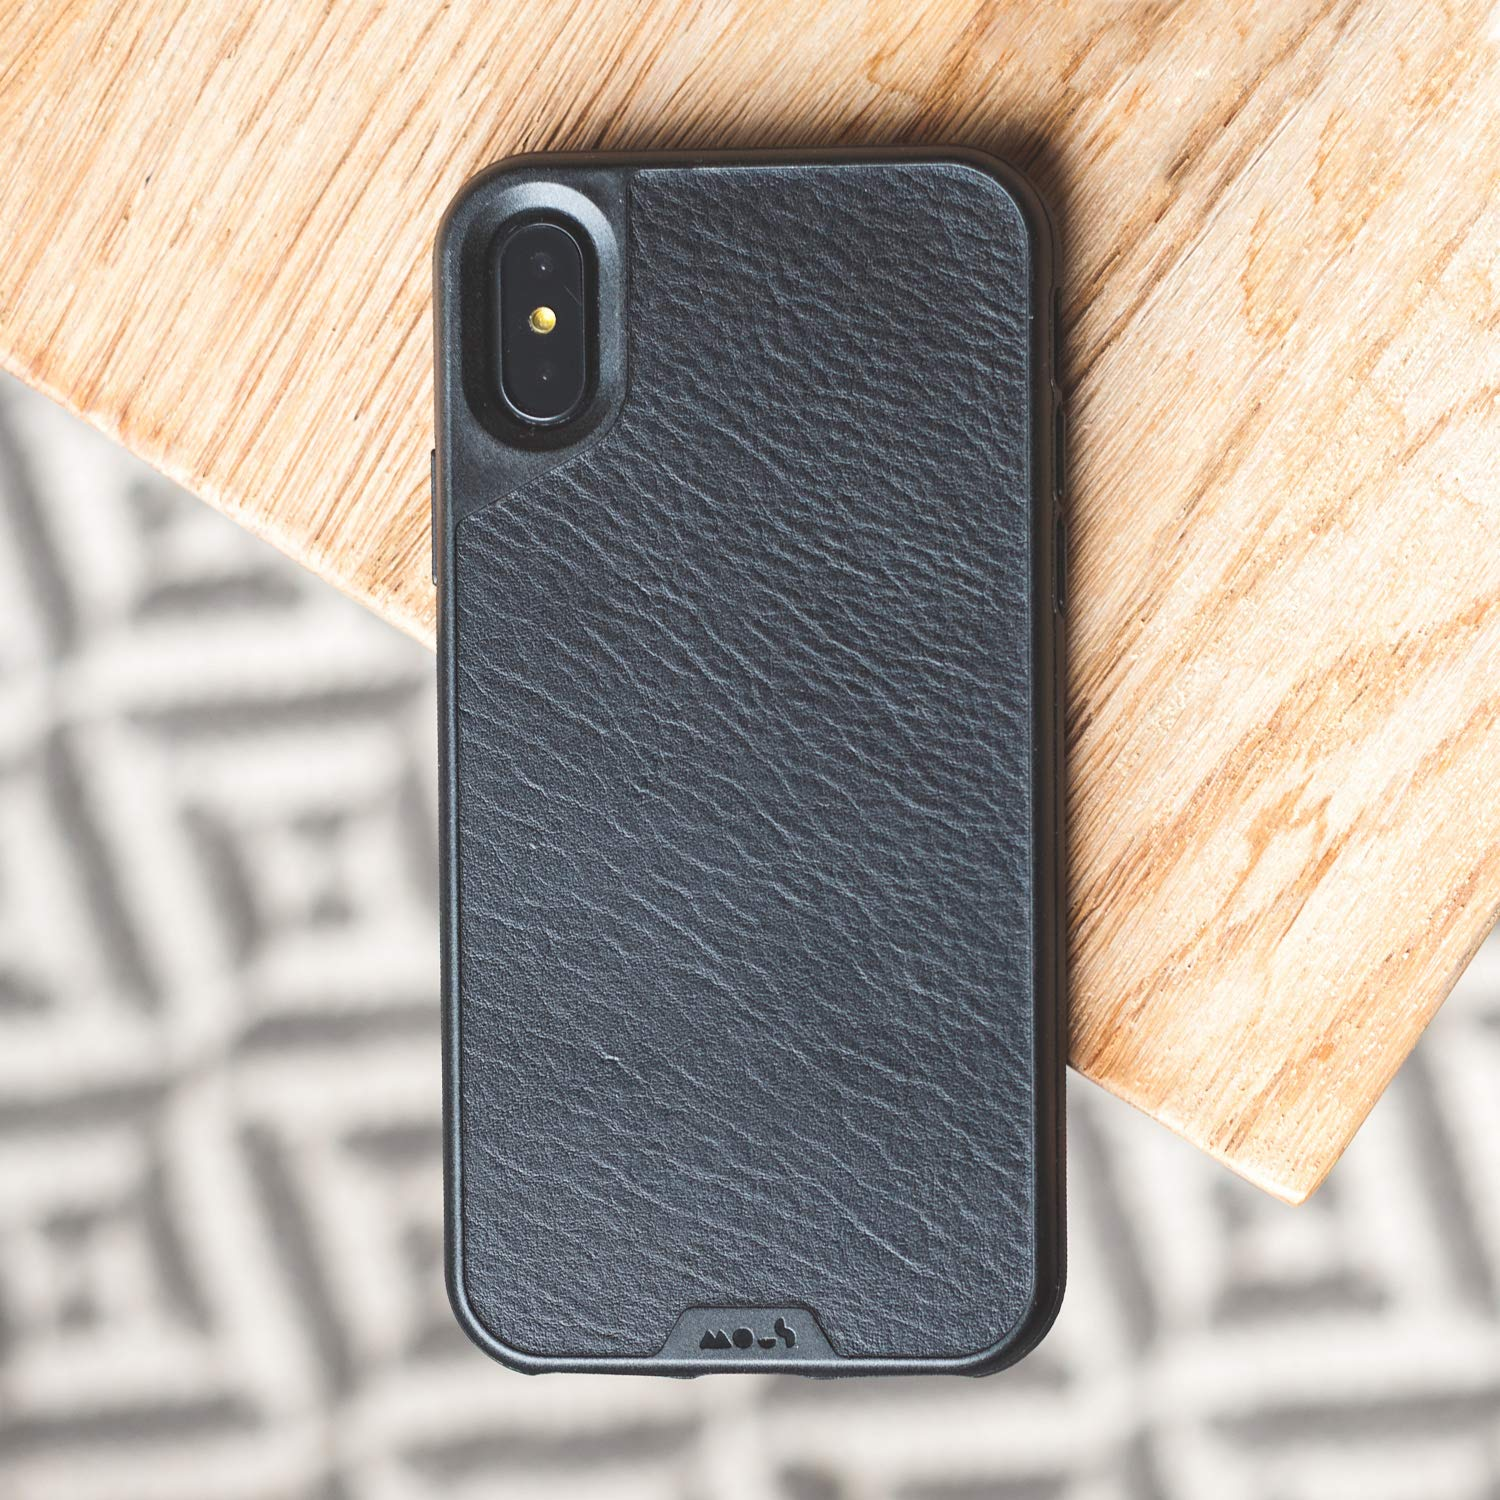 watch dbbeb fe971 Mous Protective iPhone X/XS Case - Black Leather - Screen Protector Inc.